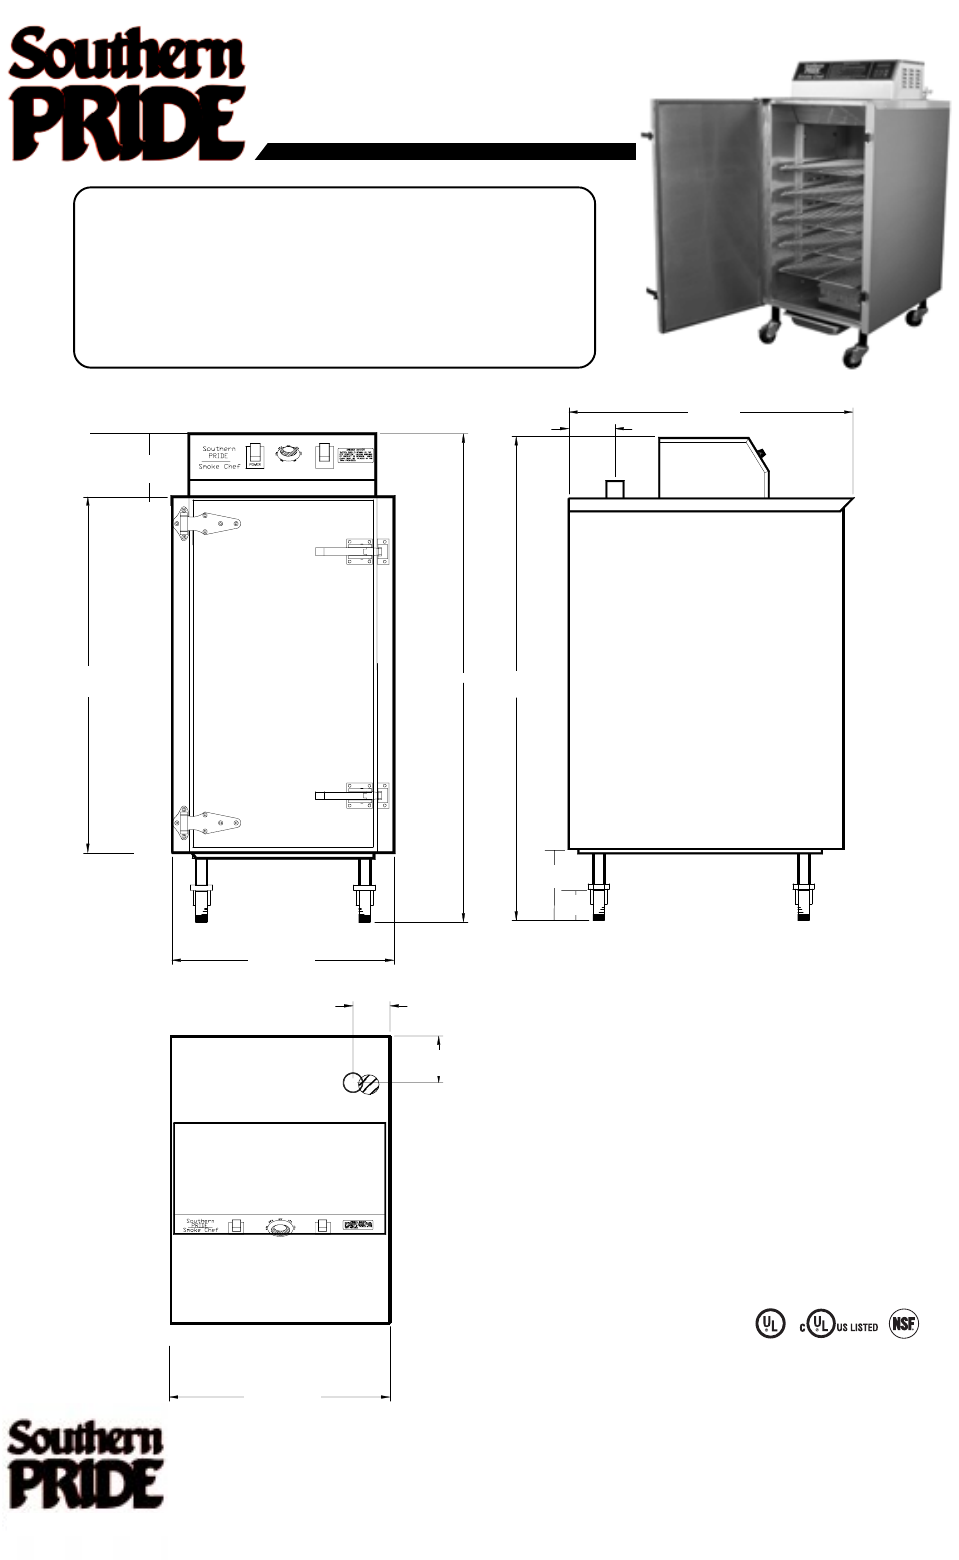 Southern Pride Smoker Wiring Diagram Electricity Sc 100 User Guide Manualsonline Com Rh Outdoorcooking Smokers